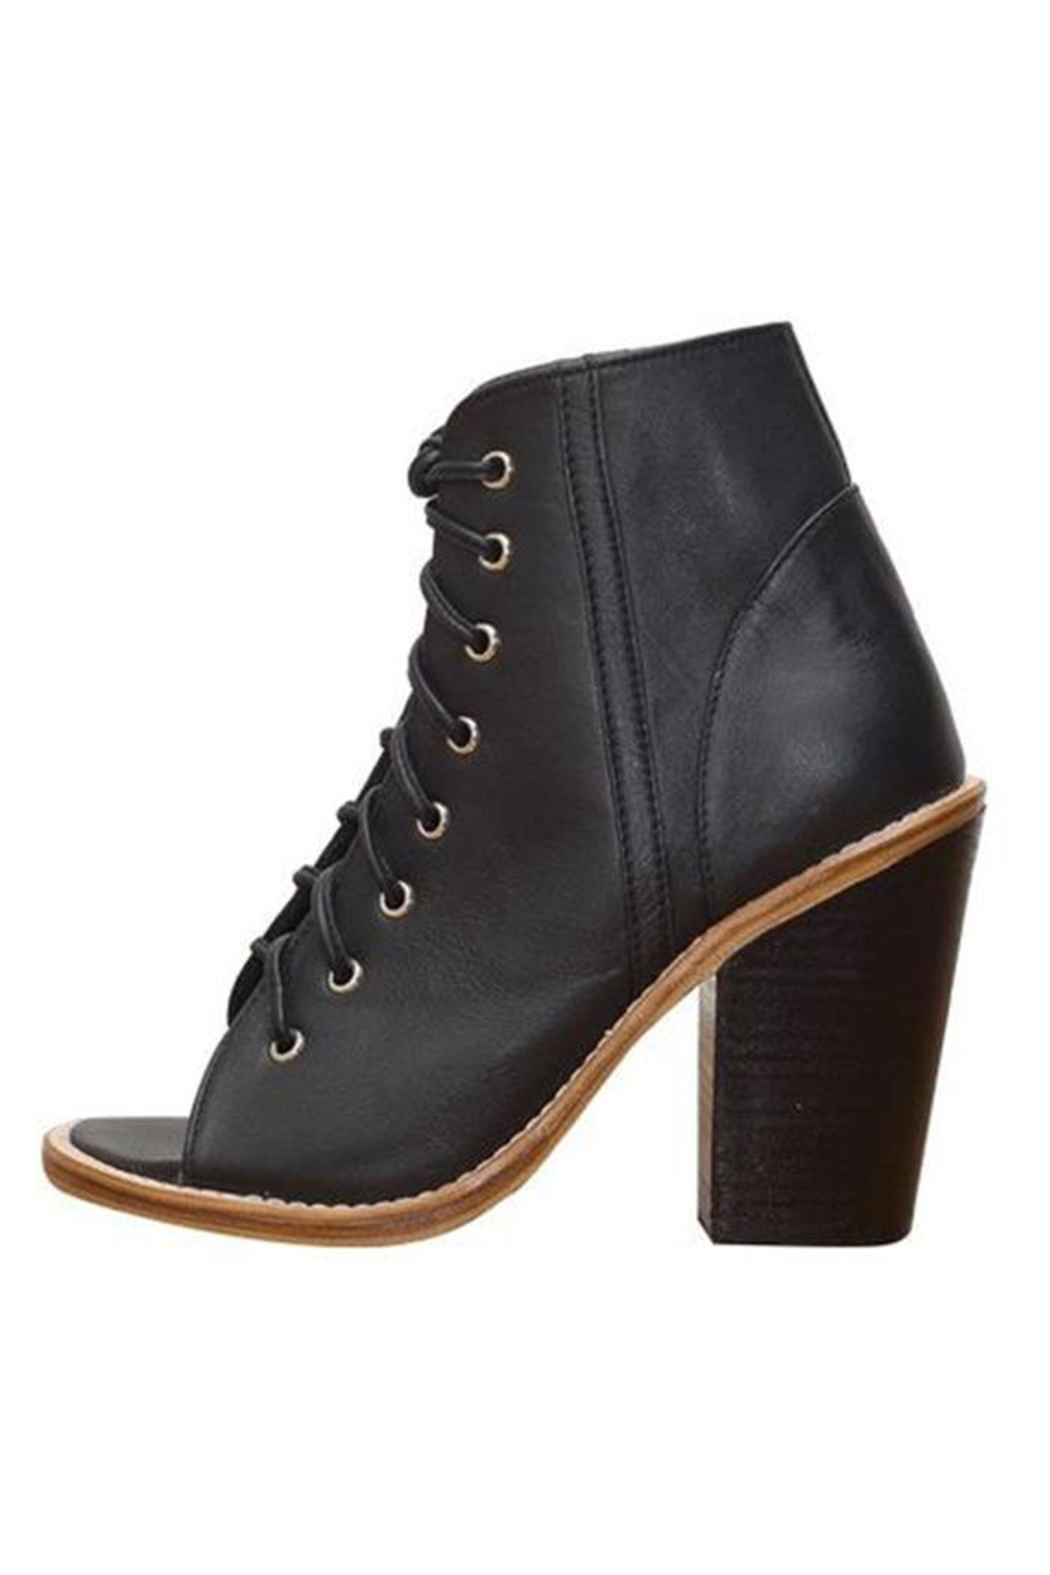 Holystone Laced-Up Leather Heels - Main Image